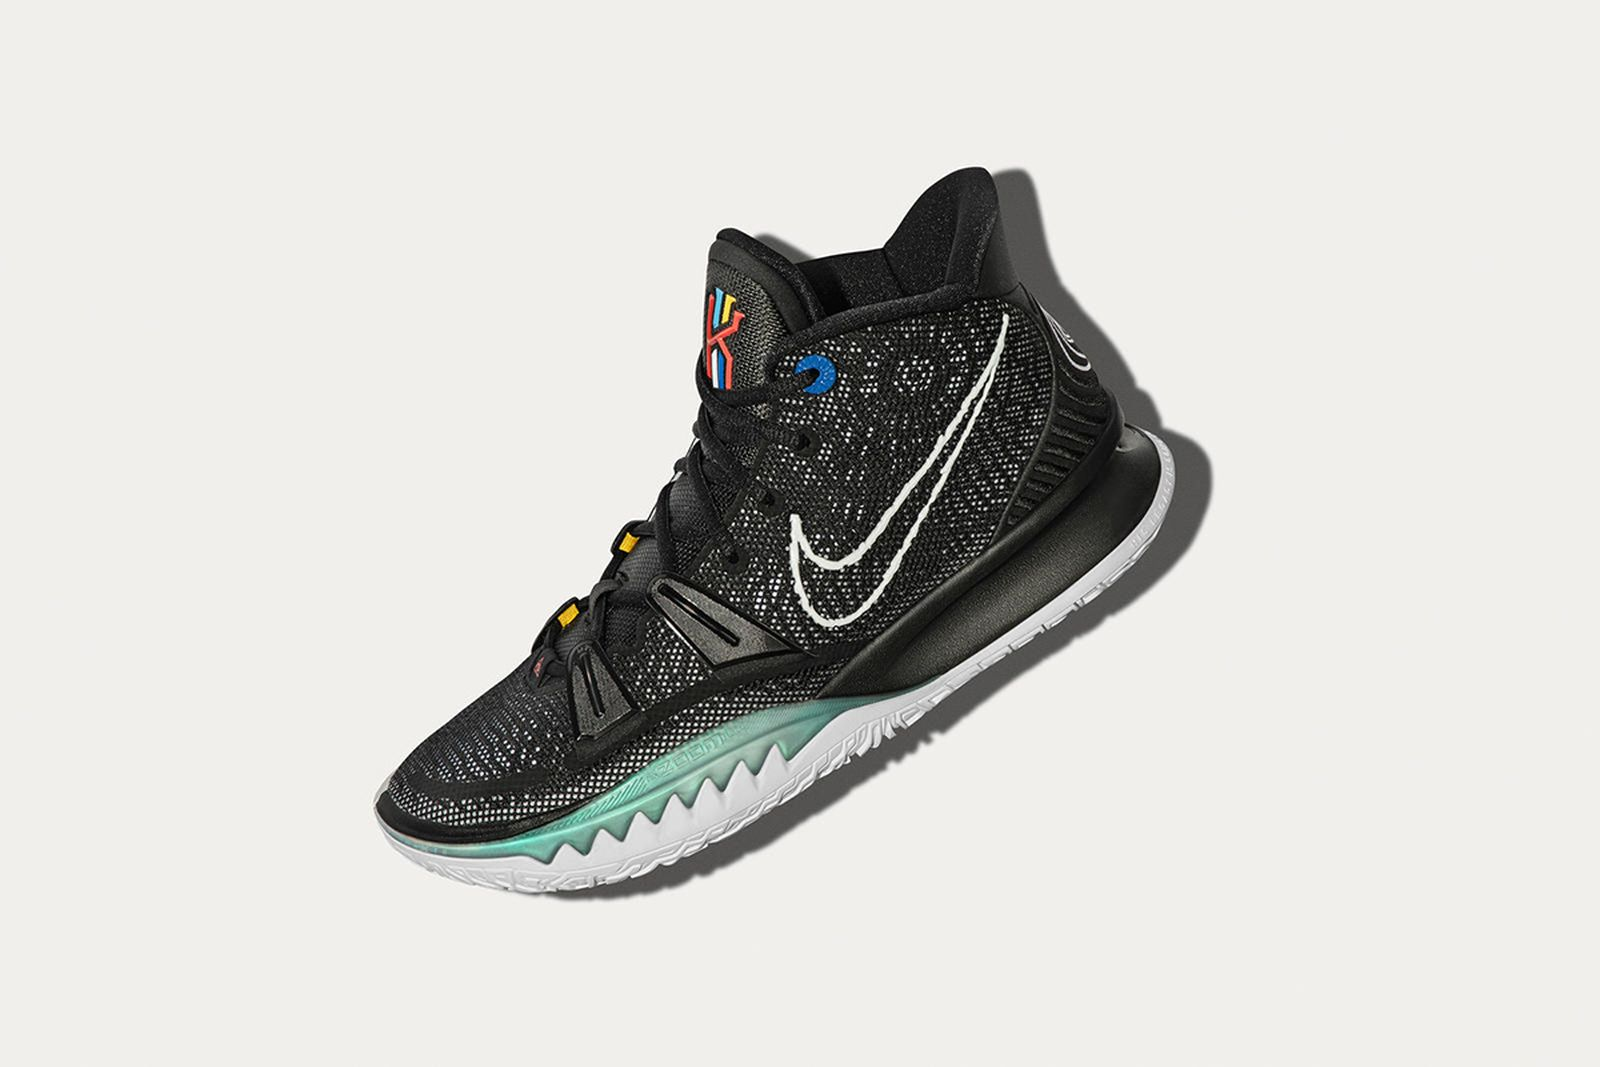 nike-kyrie-7-release-date-price-02